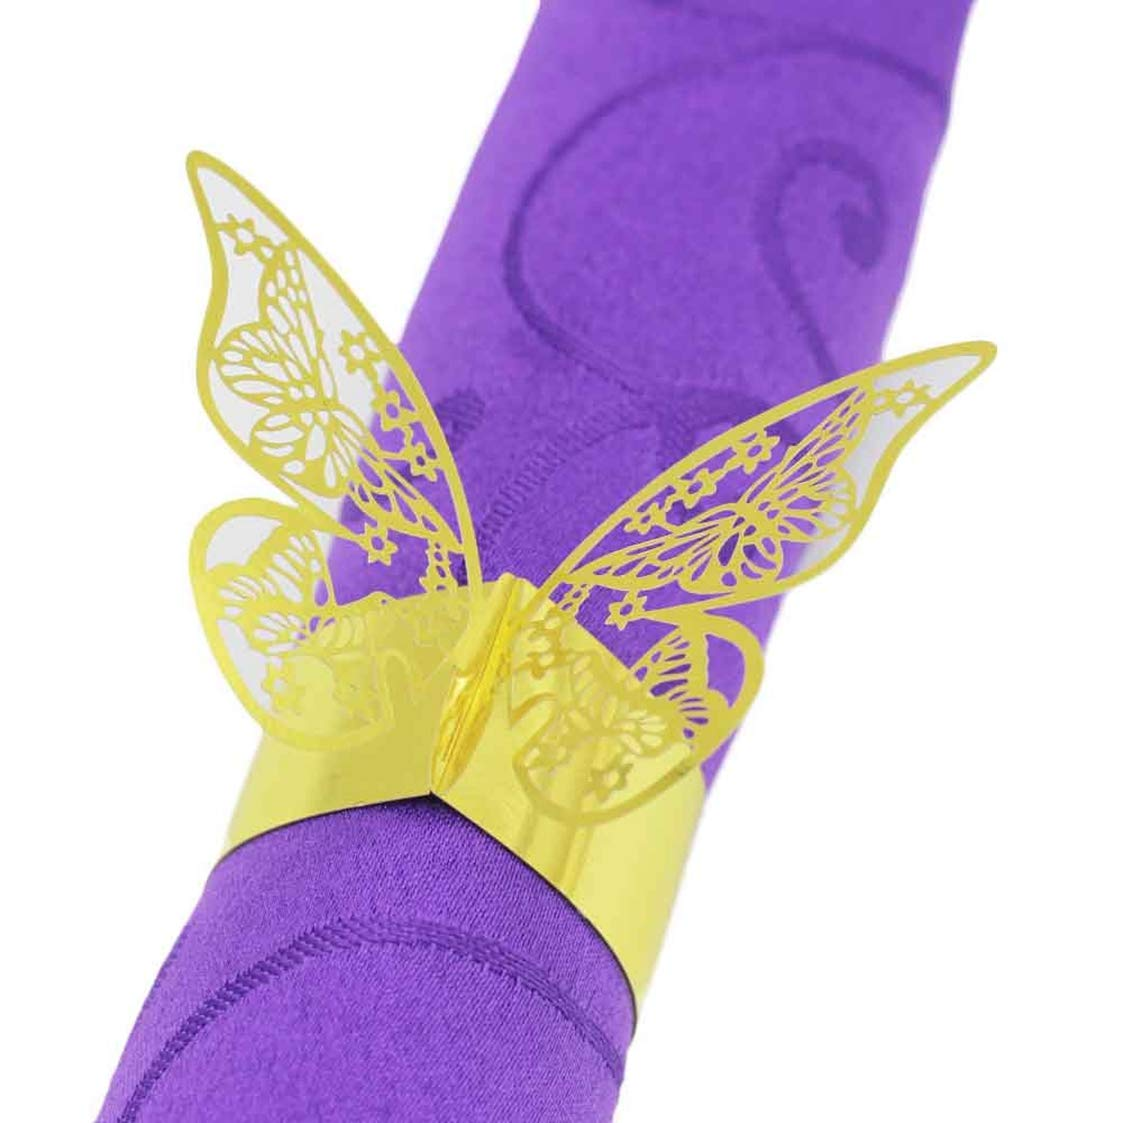 50 Pcs Laser Cut Cards Napkin Rings Wrappers Table Decoration Butterfly Wedding Party Favors Paper Decor